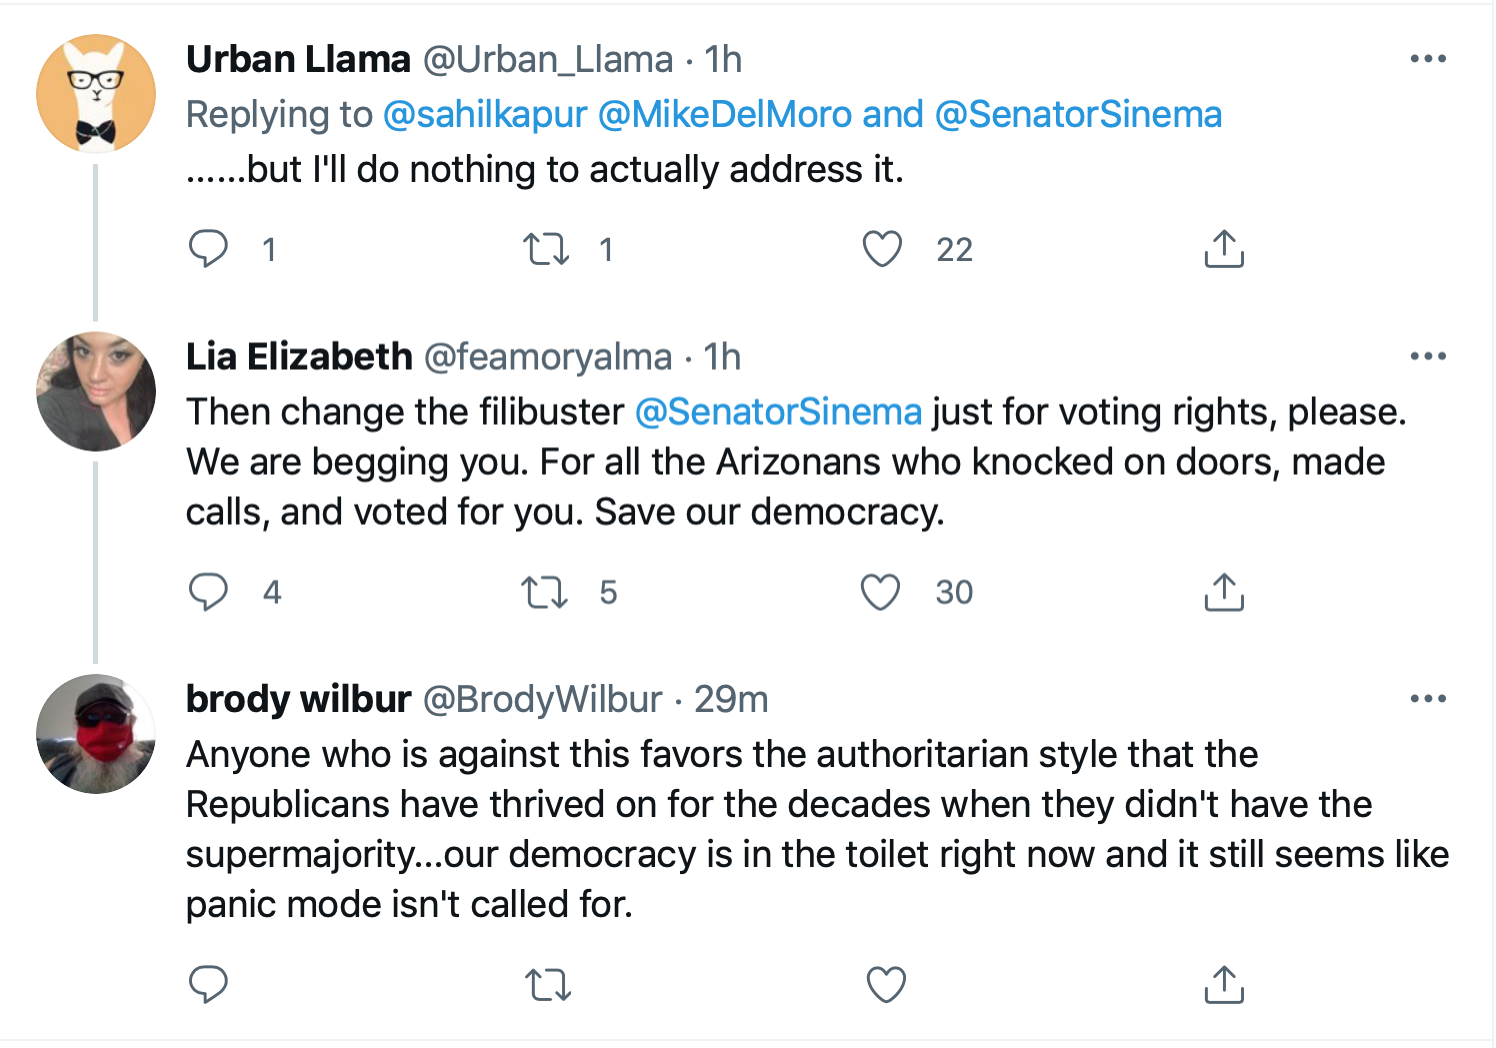 Screen-Shot-2021-07-01-at-4.33.59-PM Kyrsten Sinema Calls For Votings Rights Act After SCOTUS Ruling Civil Rights Featured Politics Top Stories Twitter